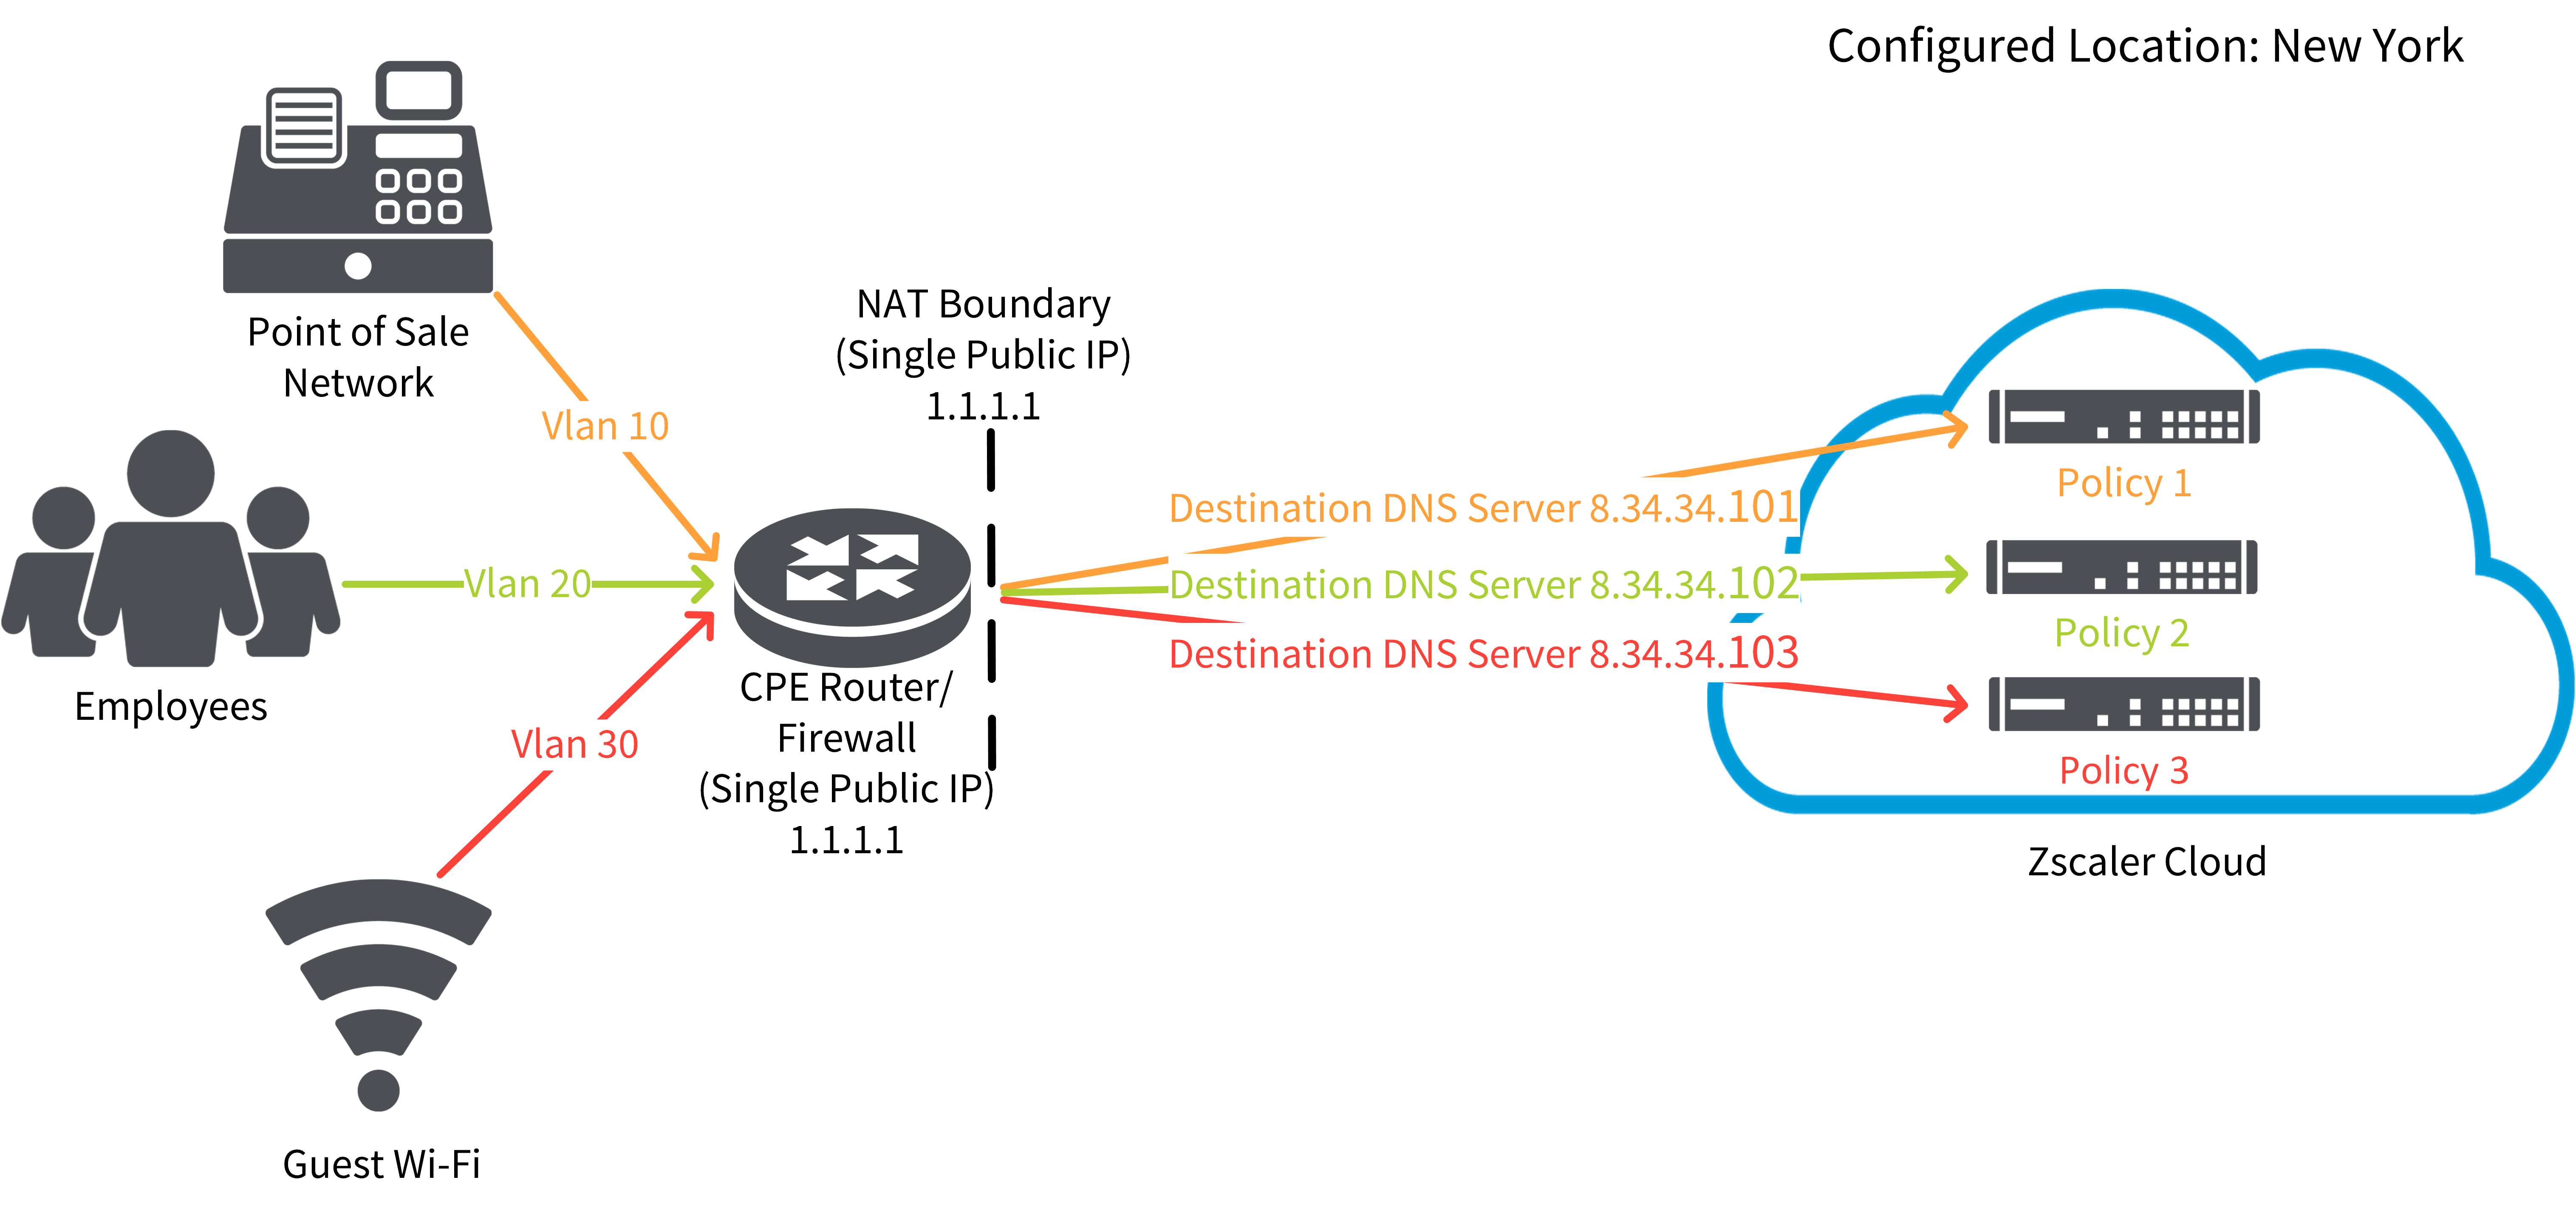 Configuring Shift Policies   Zscaler